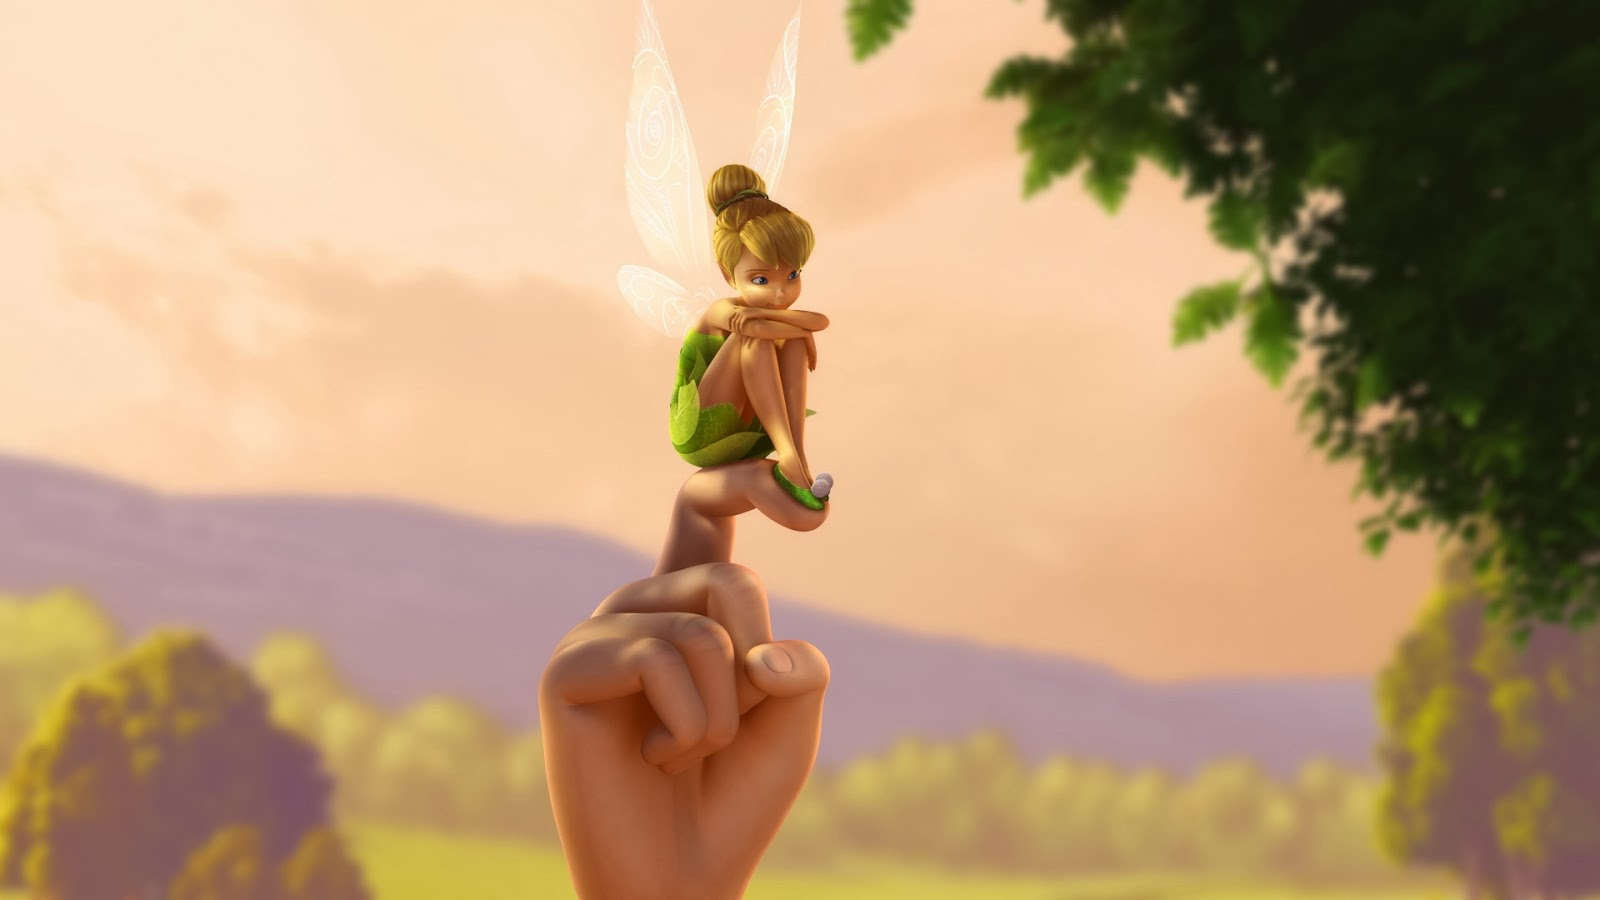 wallpaper tinkerbell hd 1080p your title